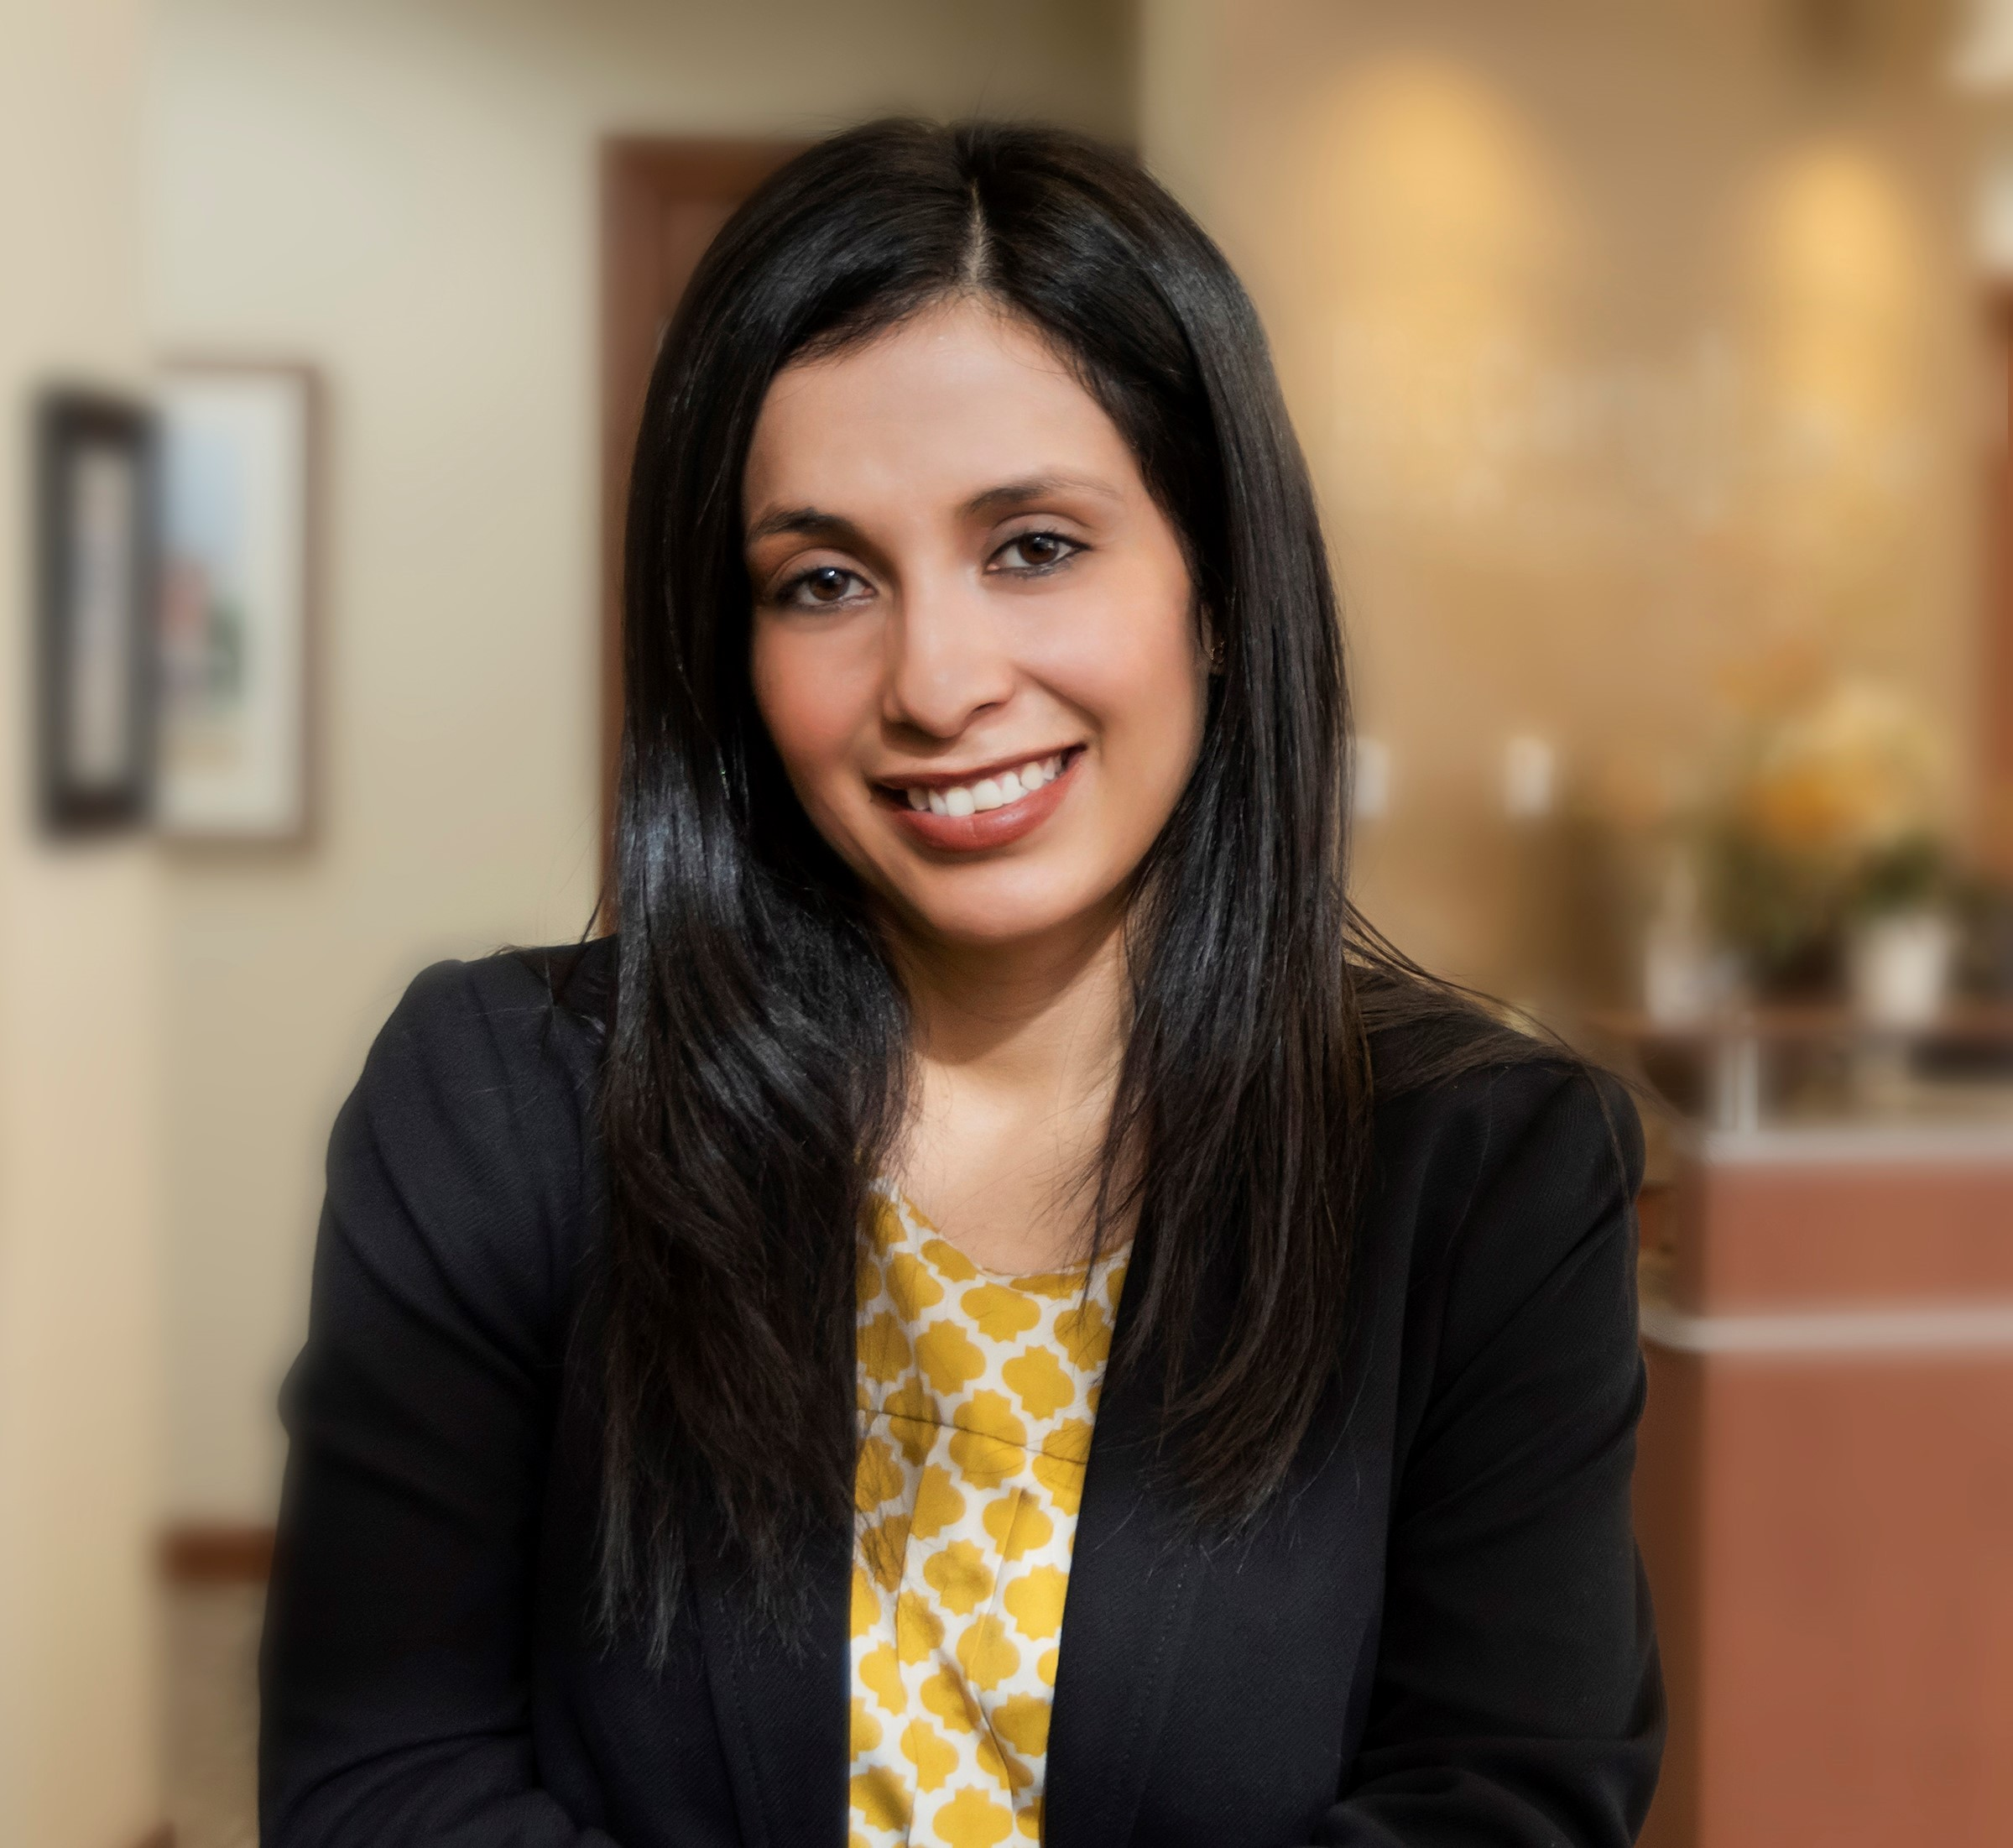 Gov. Evers Appoints Yadira Rein as Outagamie County Circuit Court Judge